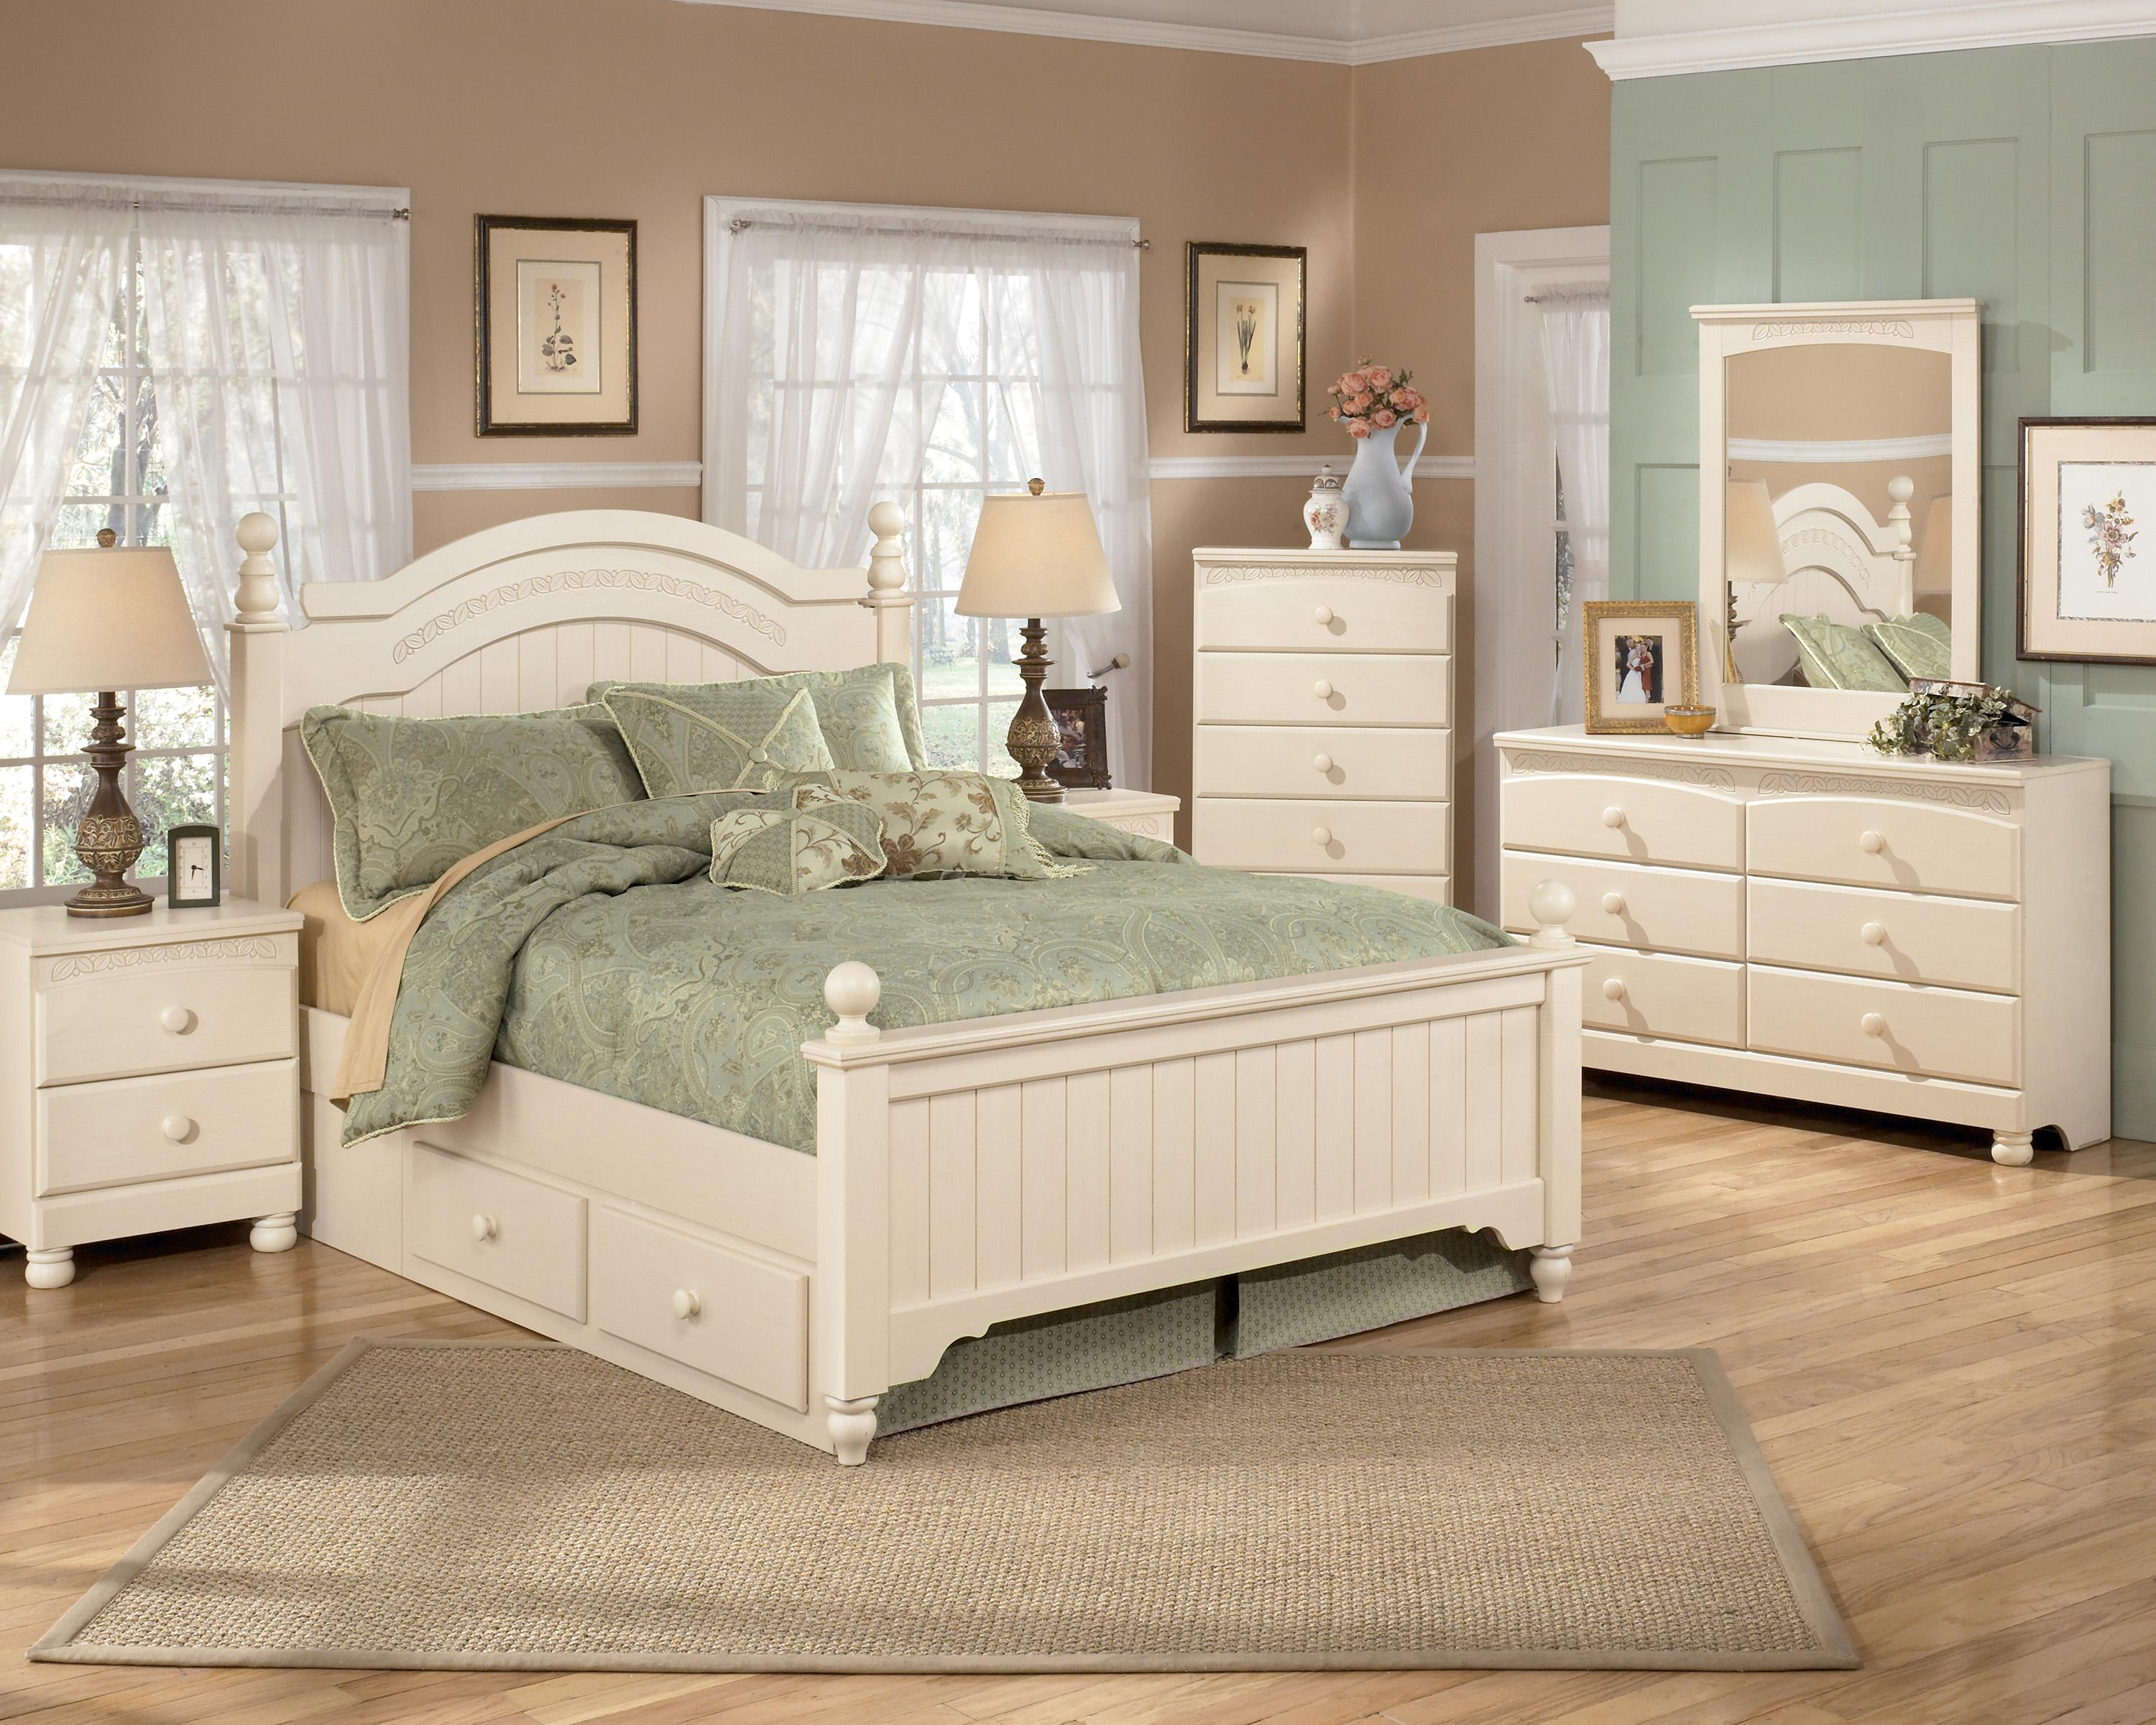 Signature Design by Ashley Cottage Retreat Full Bedroom Group - Item Number: B213 F Bedroom Group 3